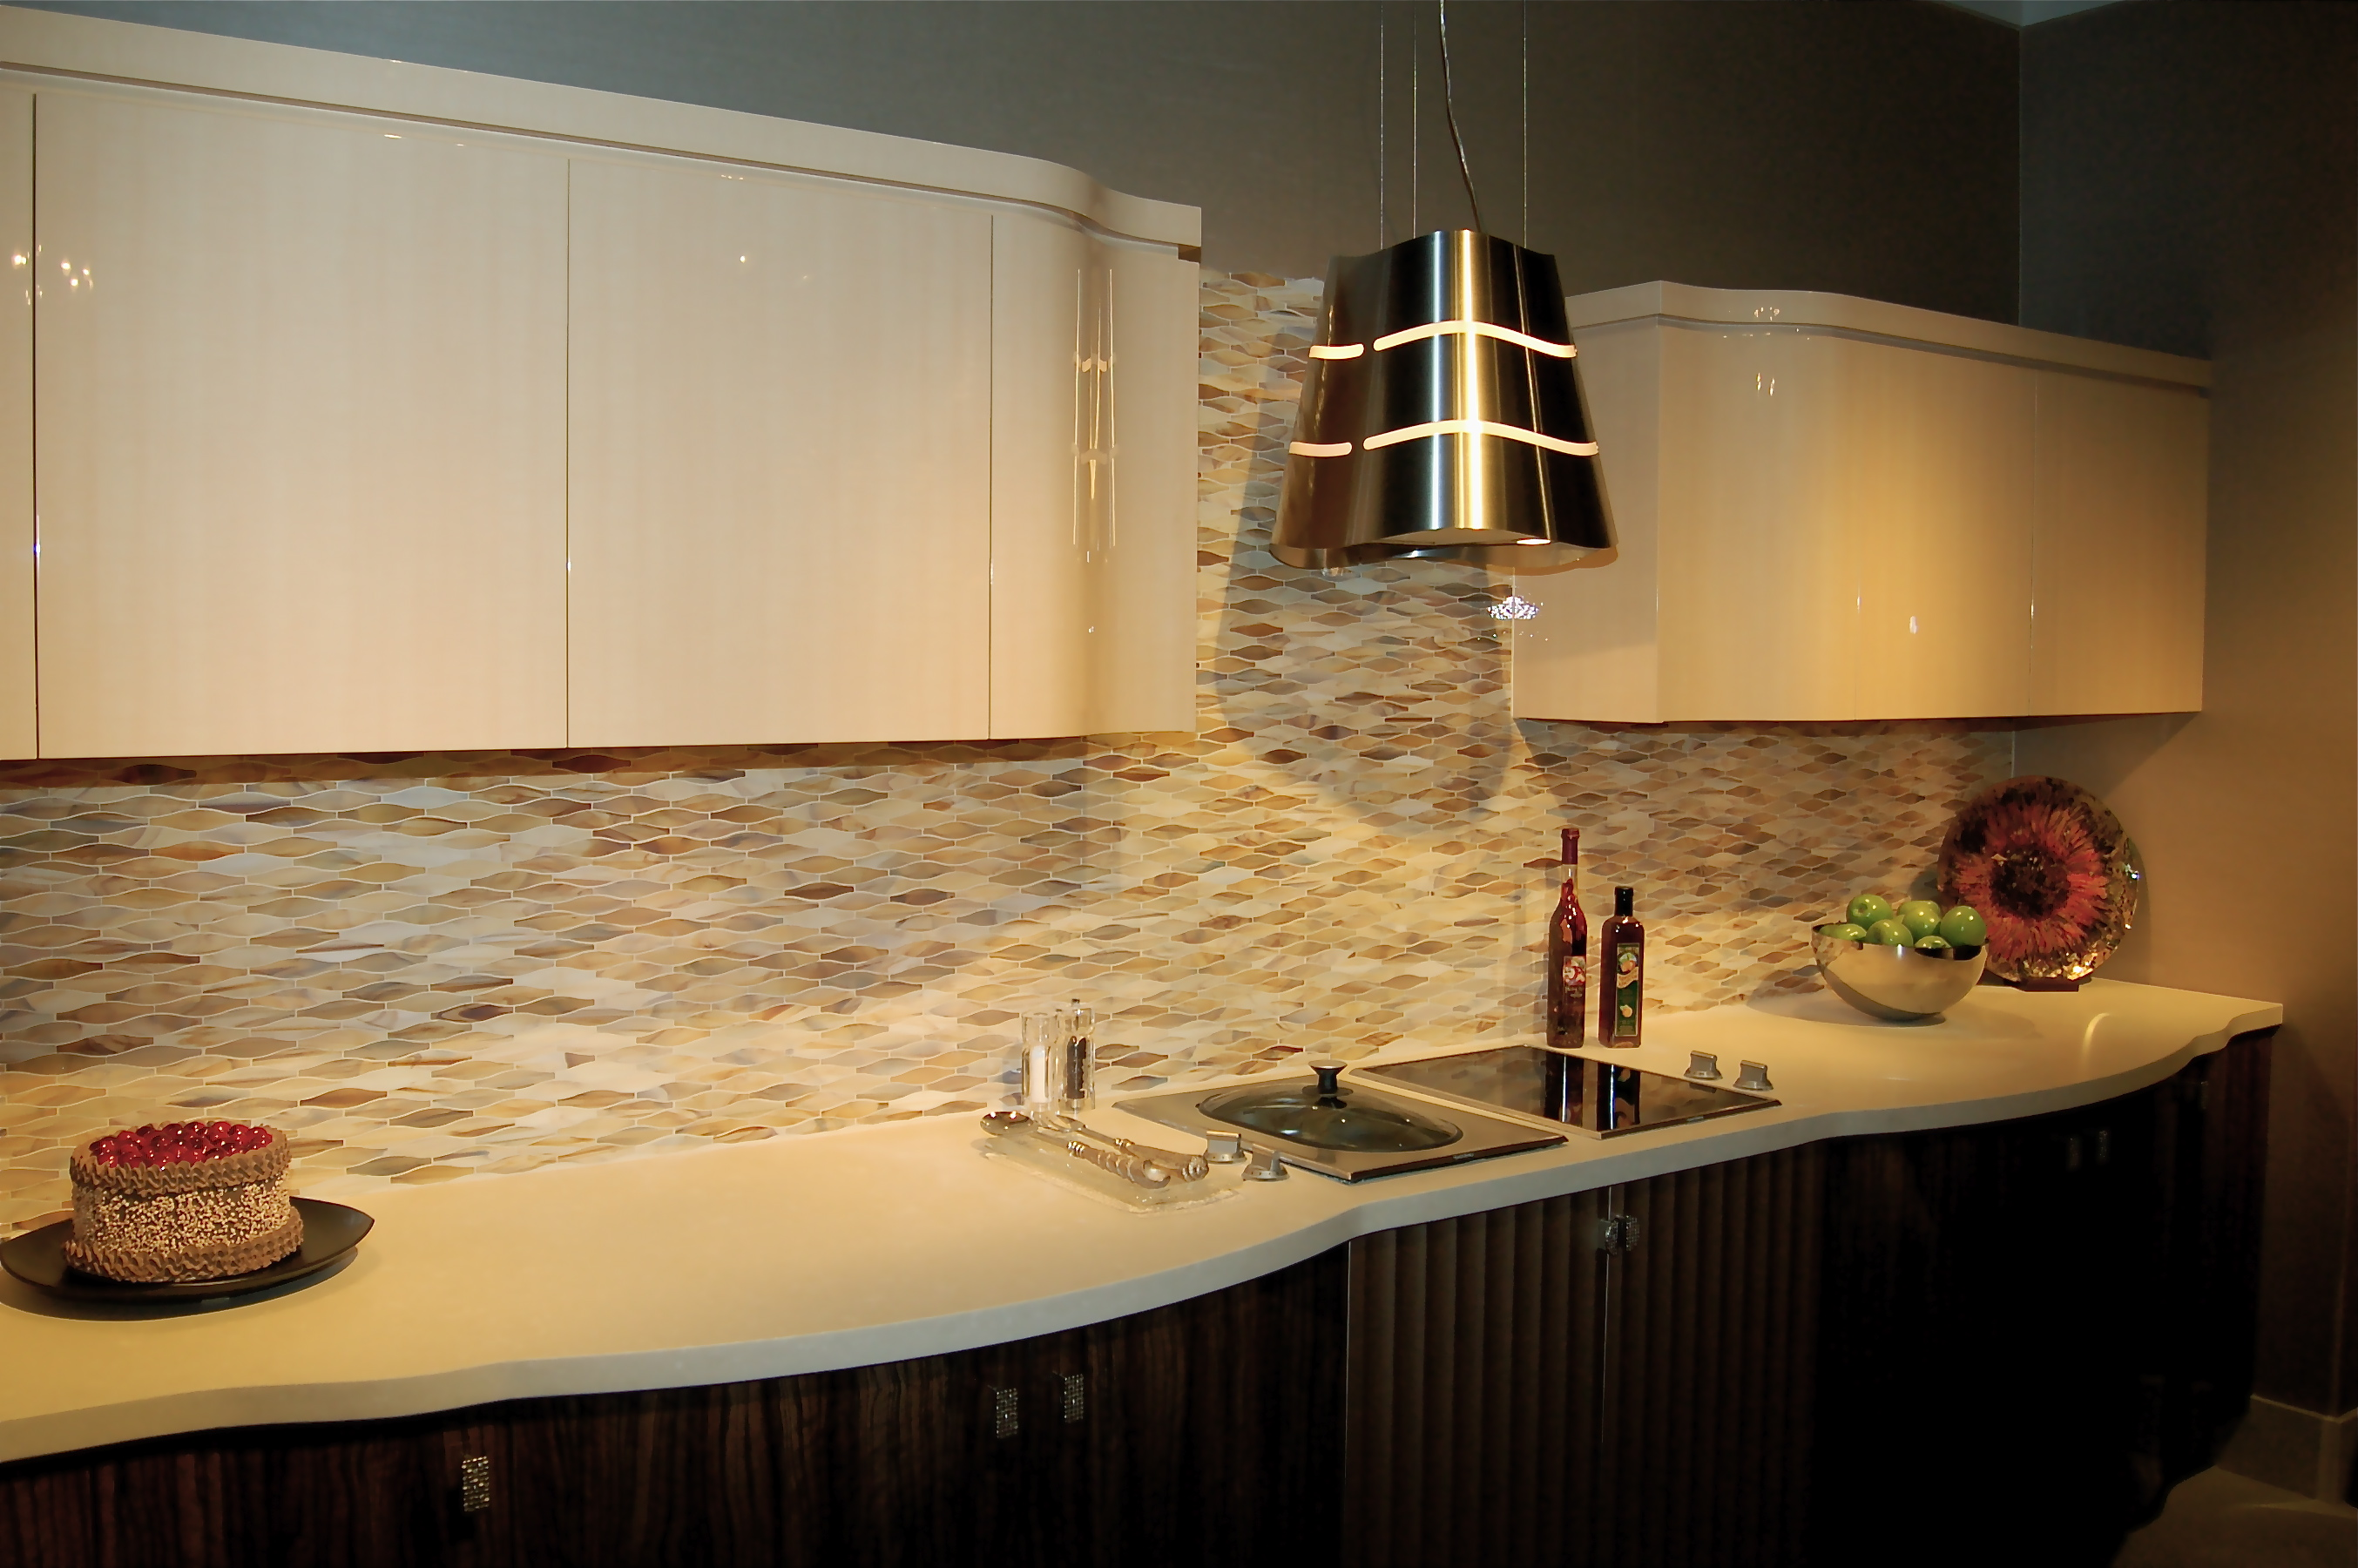 Affordable Kitchen Wall Tiles Ideas With Images With Glass Kitchen Tiles Uk    Kitchen Wall Tiles